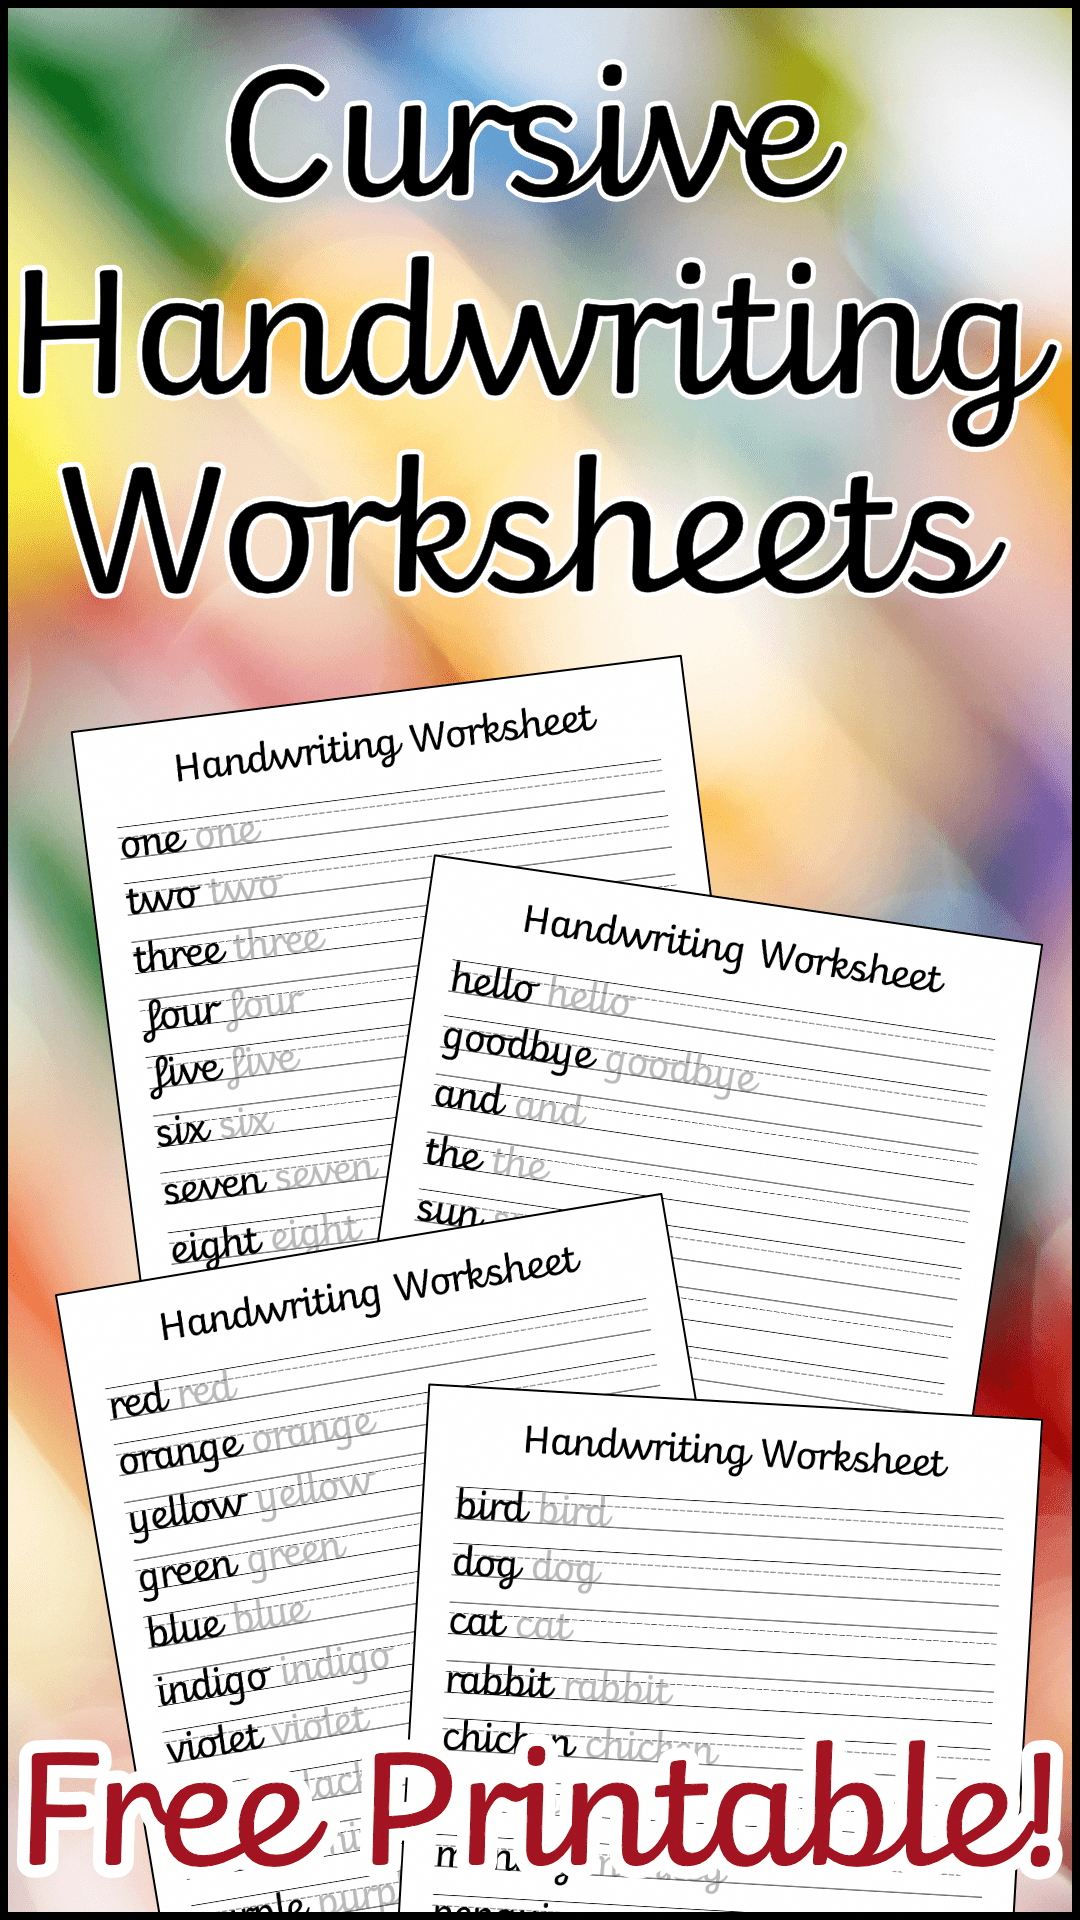 A Set Of 10 Cursive Handwriting Worksheets To Help Your